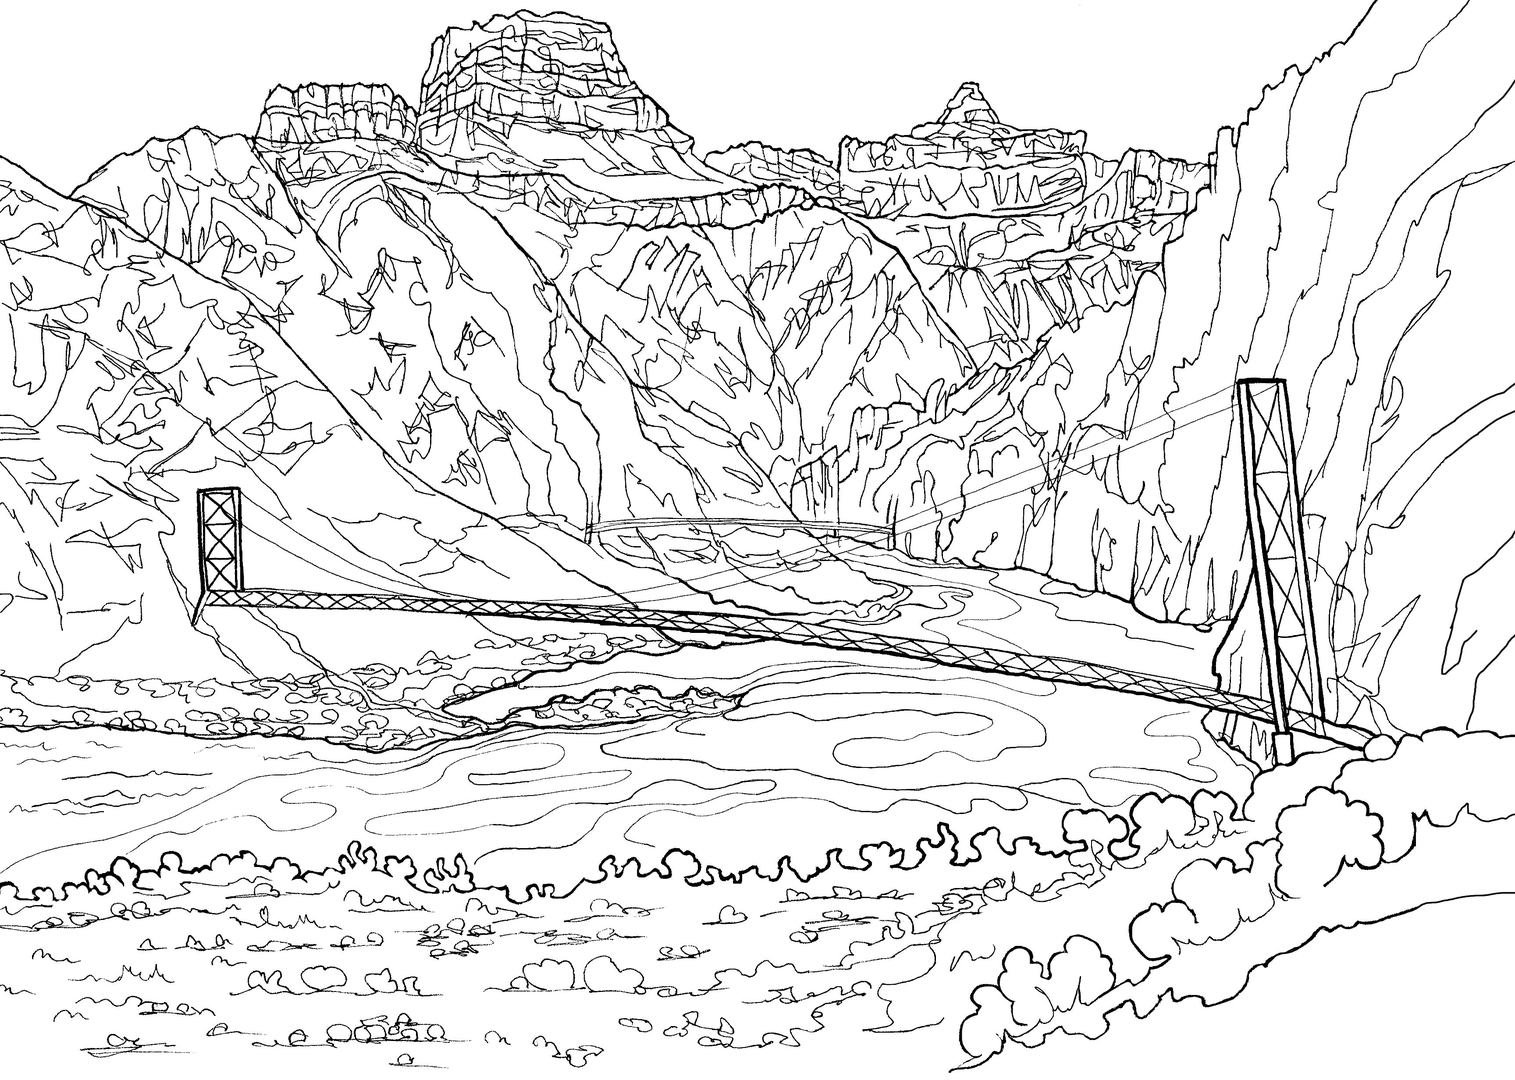 Grand Canyon, A Classy Coloring Book sold on Amazon!